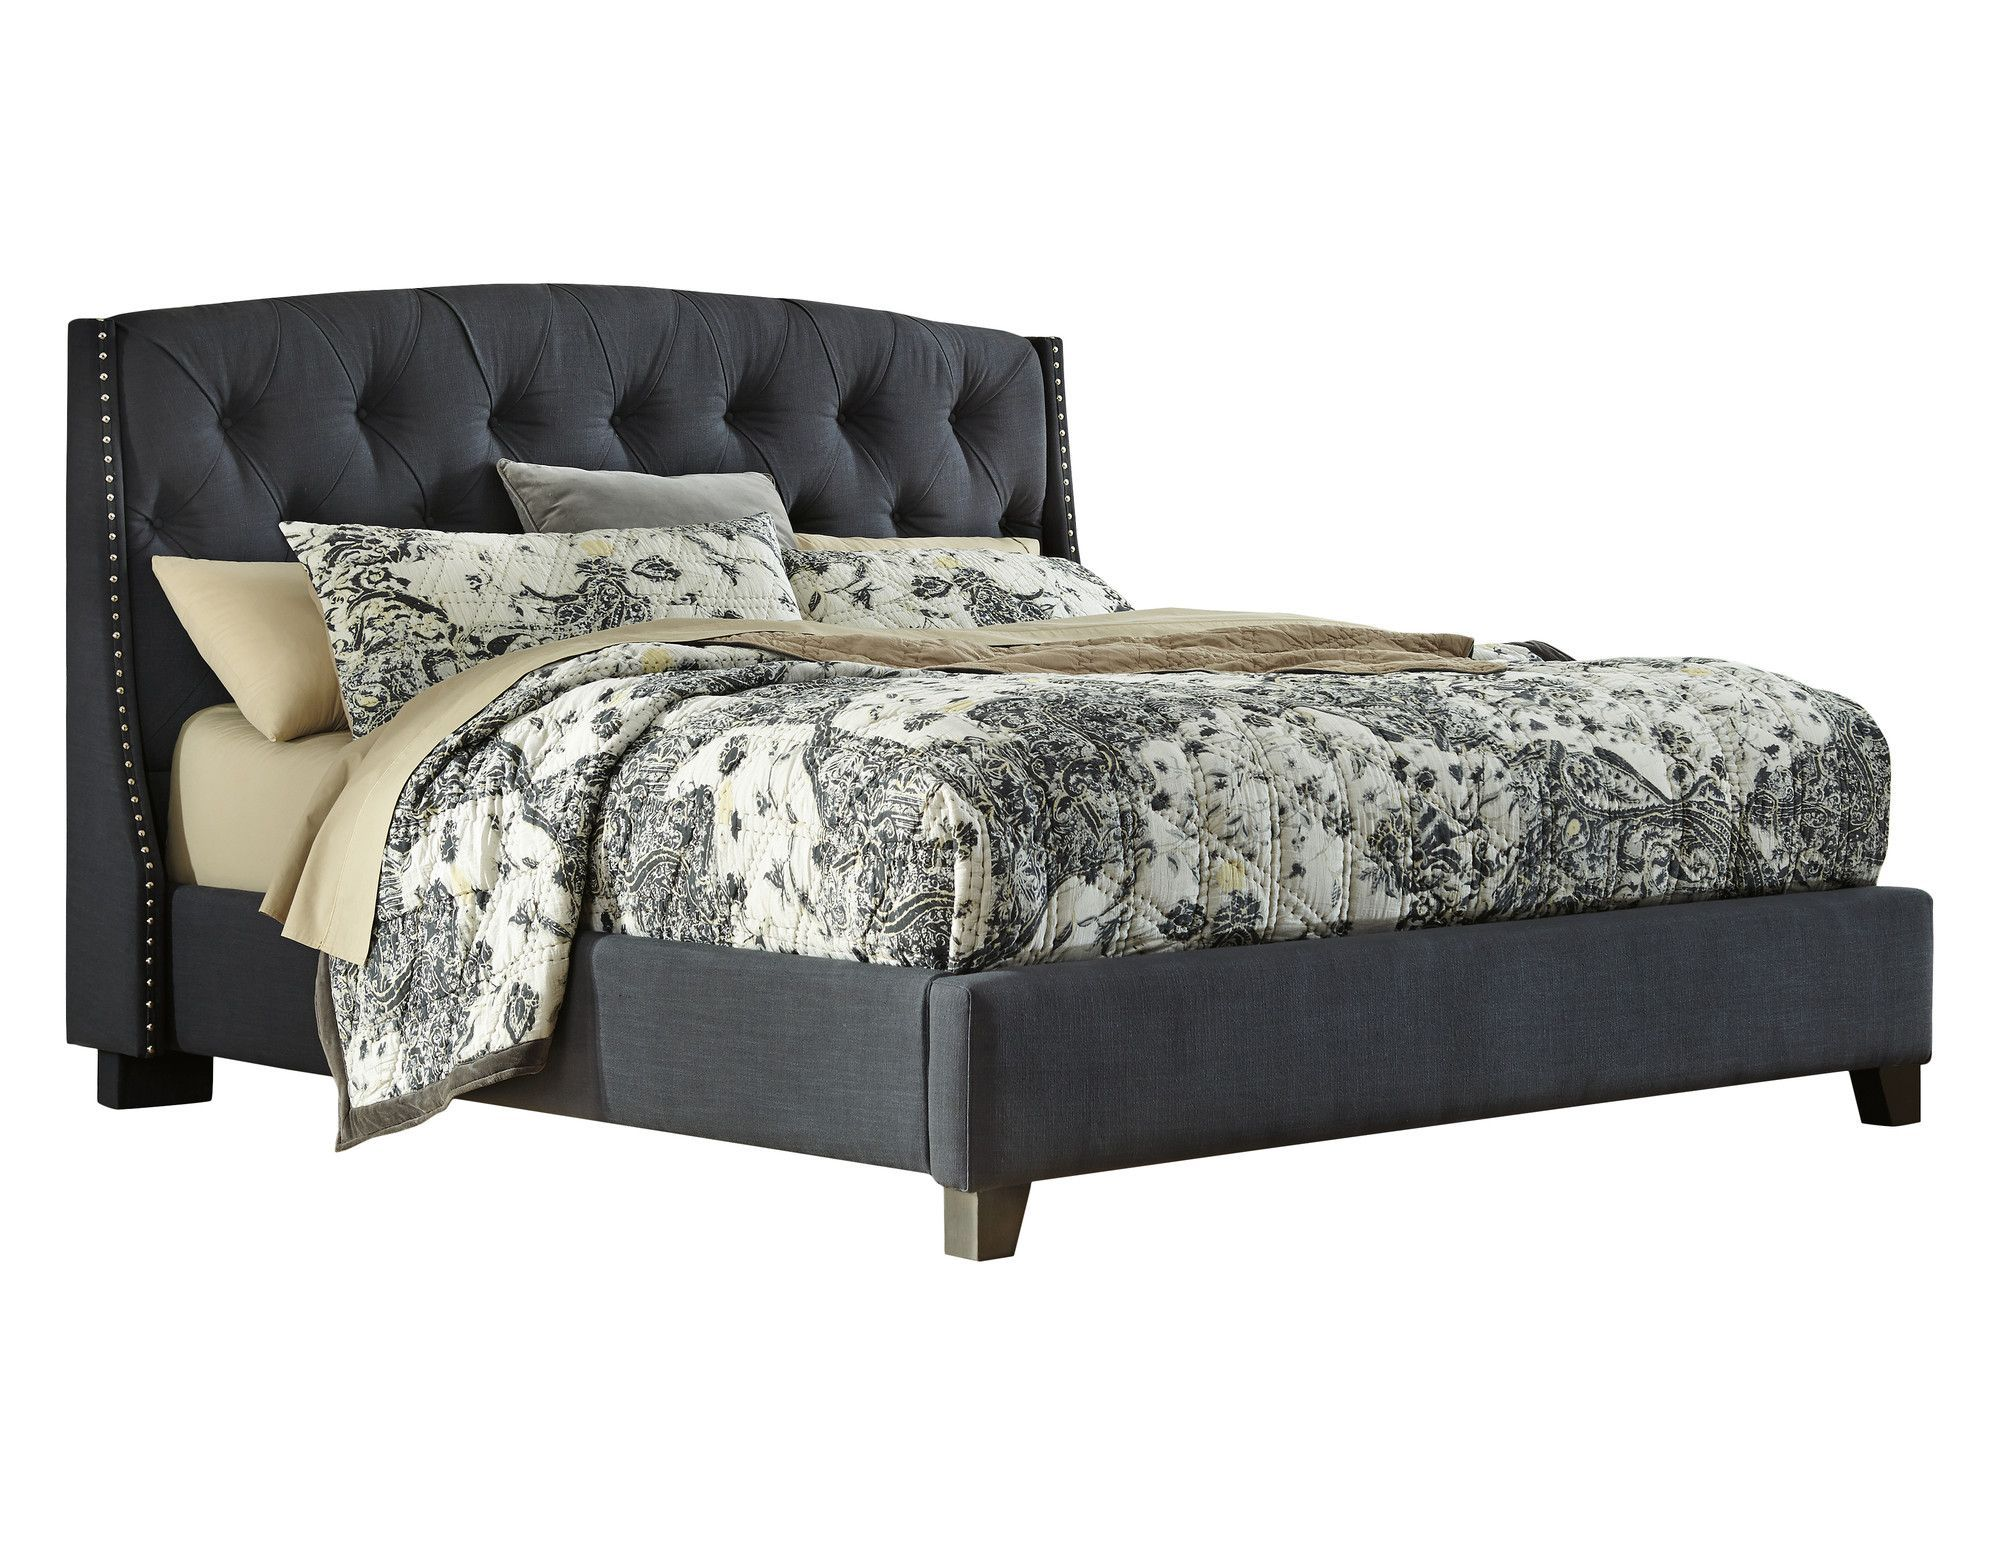 Signature Design By Ashley Upholstered Headboard & Reviews